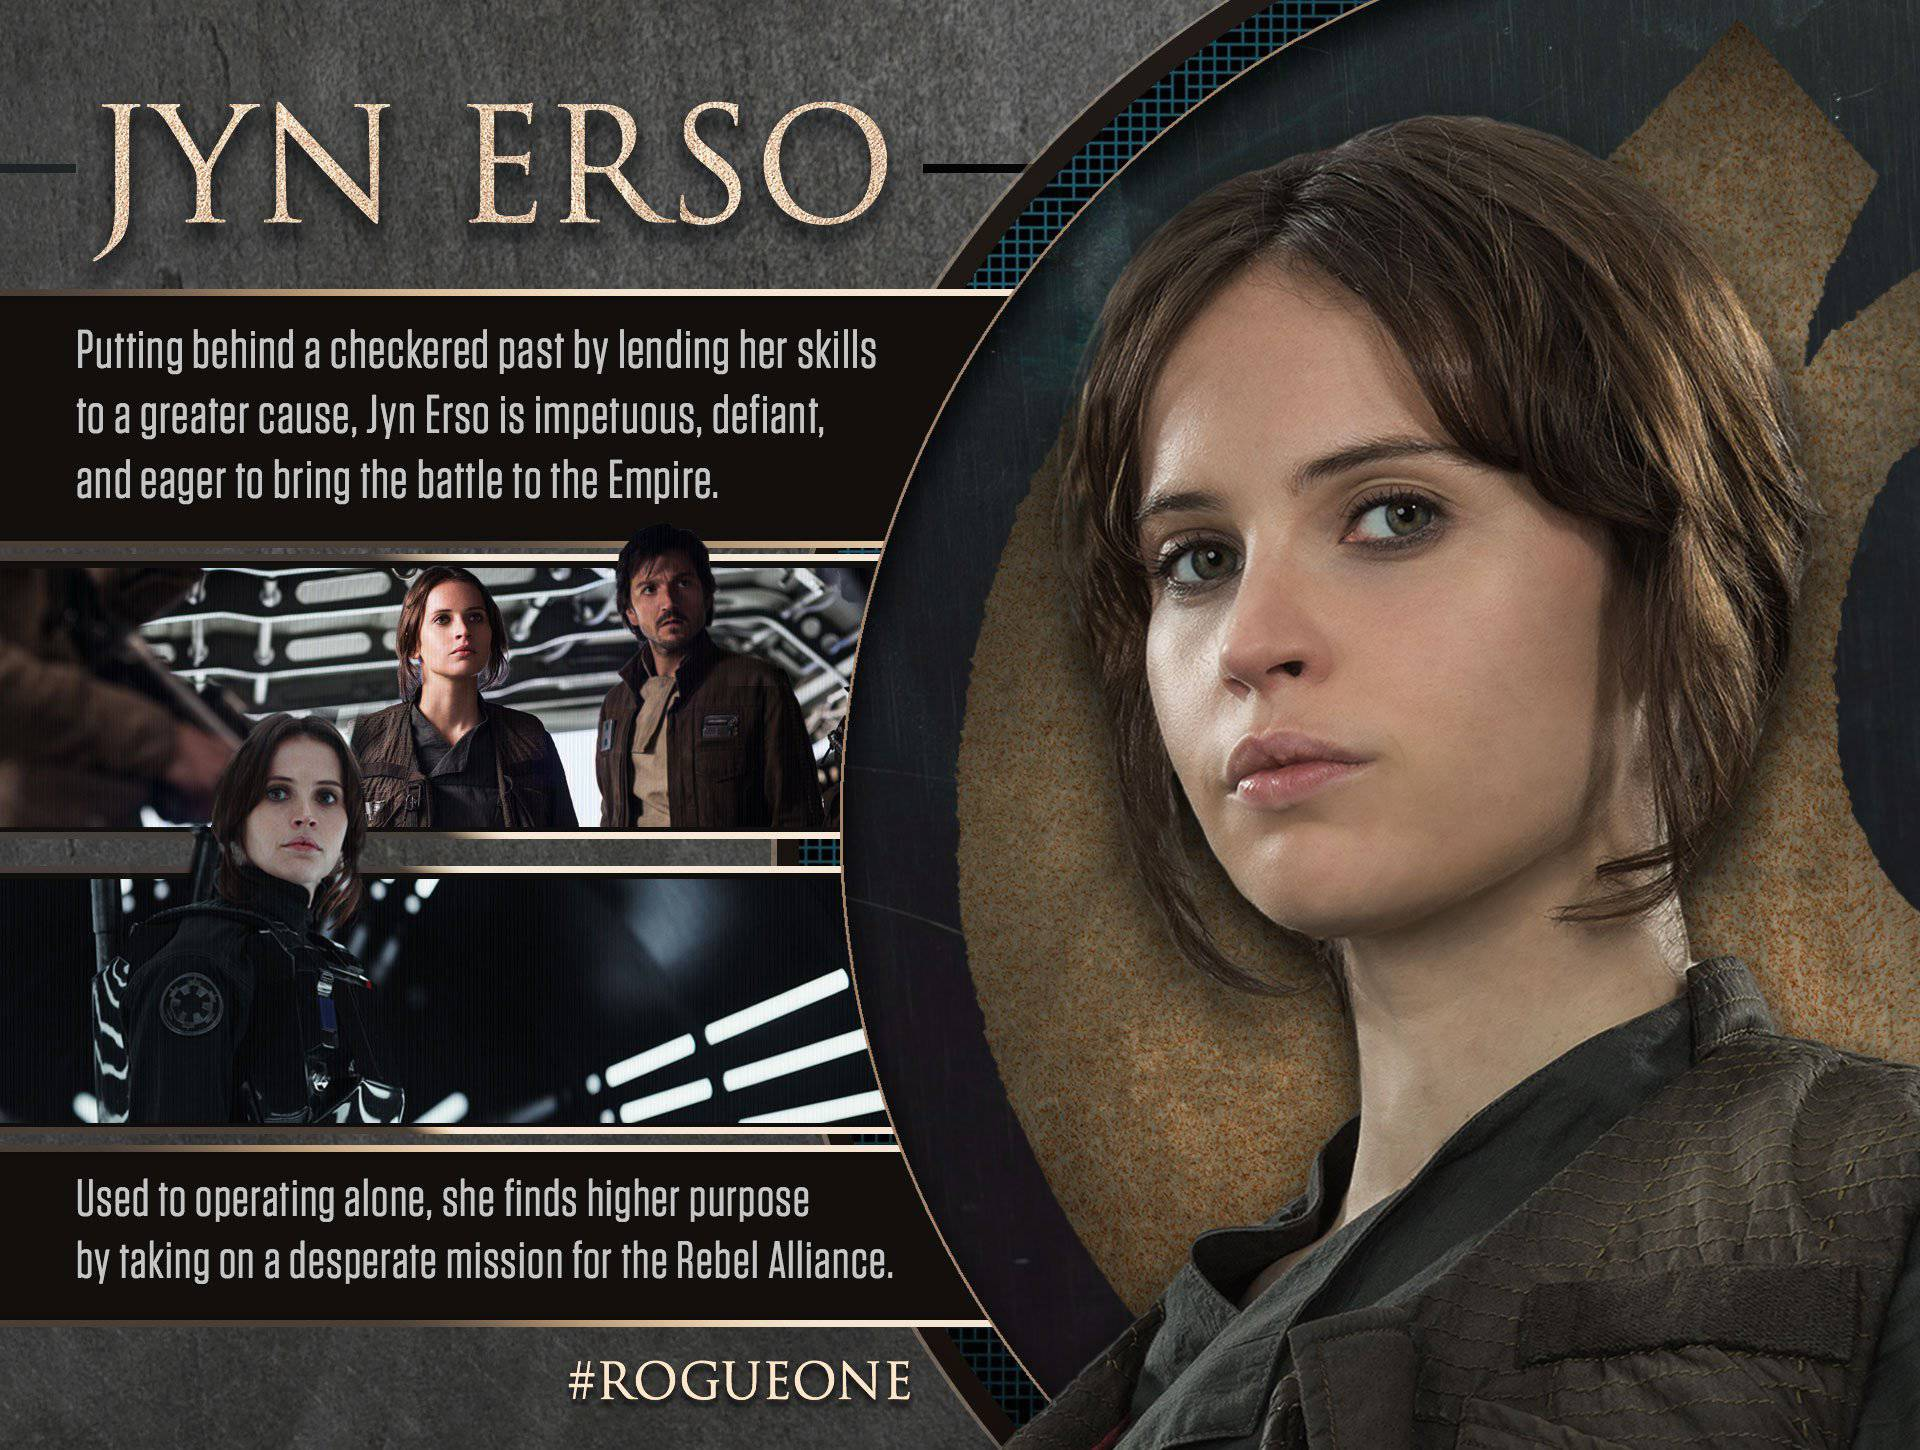 rogue-one-character-card-jyn-erso